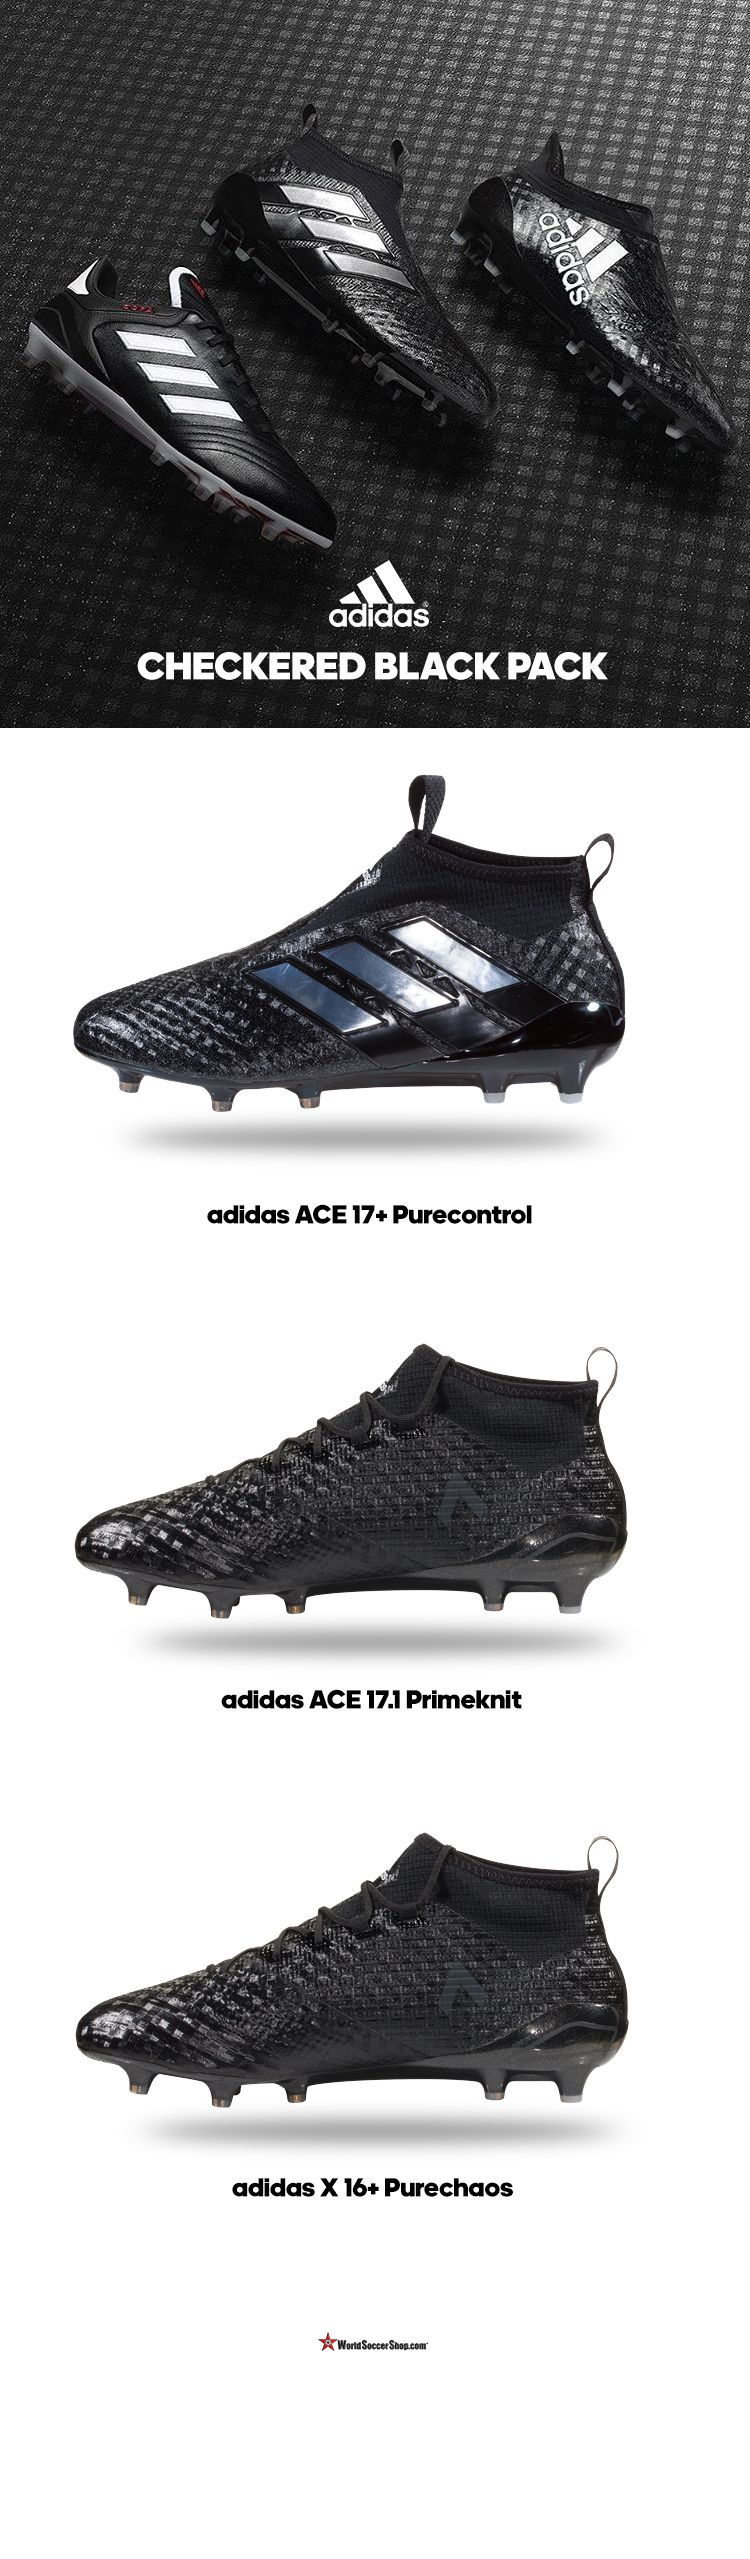 purchase cheap 75082 66fcf A blackout design for this new 2017 silo. Shop the new ACE 17 Purecontrol, ACE  17.1 Primeknit  X 16 PureChaos now at WorldSoccerShop.com Adidas Soccer